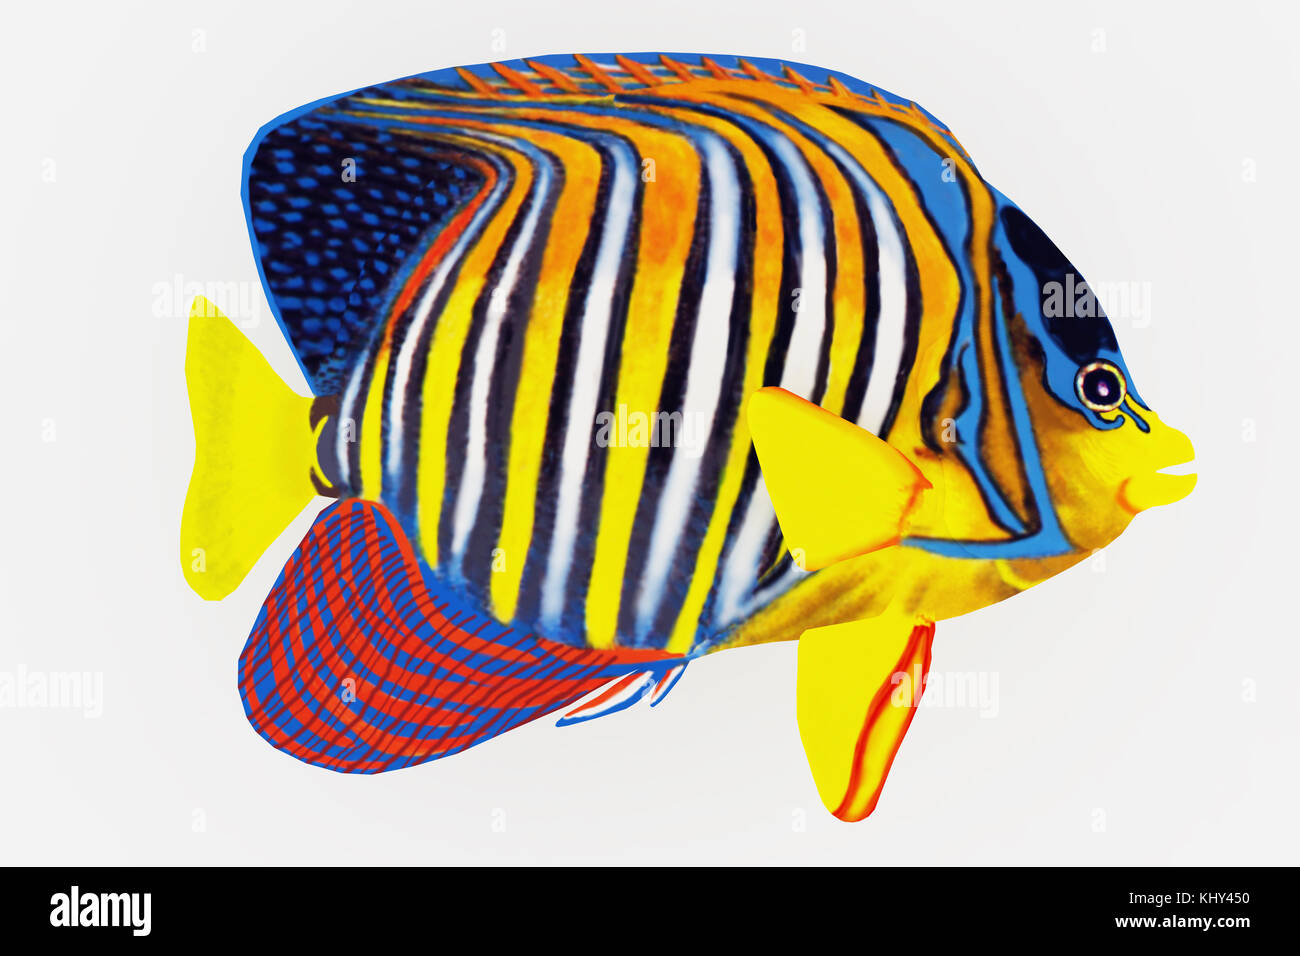 Royal Angelfish - The Royal Angelfish is a saltwater species reef fish in tropical regions of Indo-Pacific oceans. - Stock Image